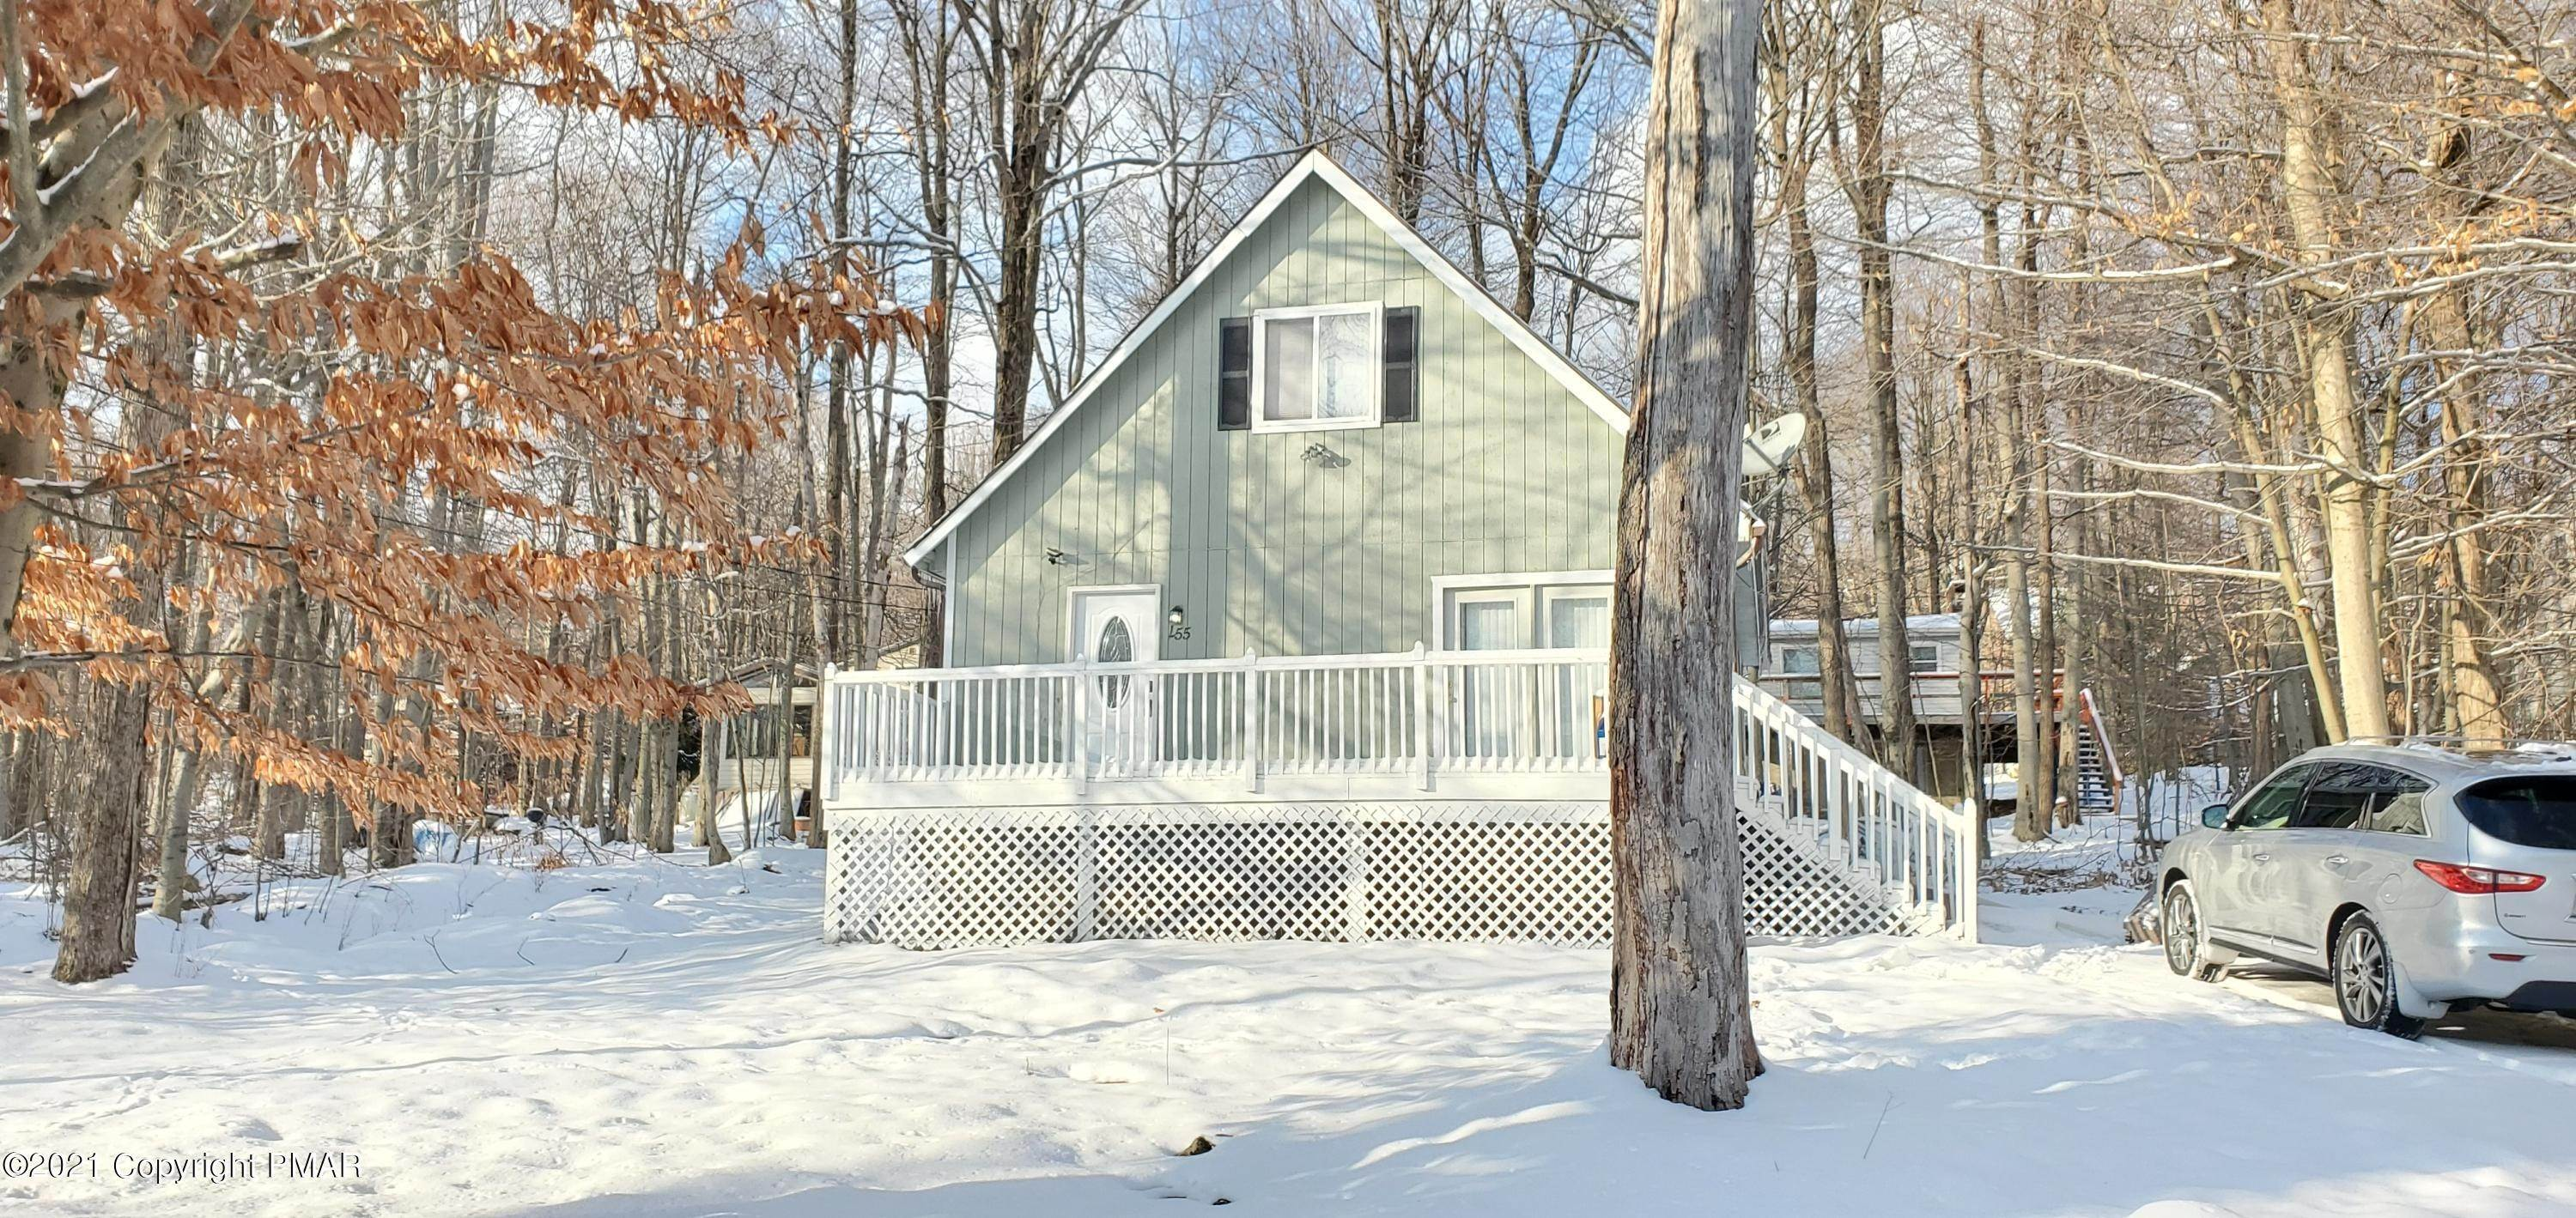 Single Family Homes for Sale at 2027 Skyview Ter Tobyhanna, Pennsylvania 18466 United States